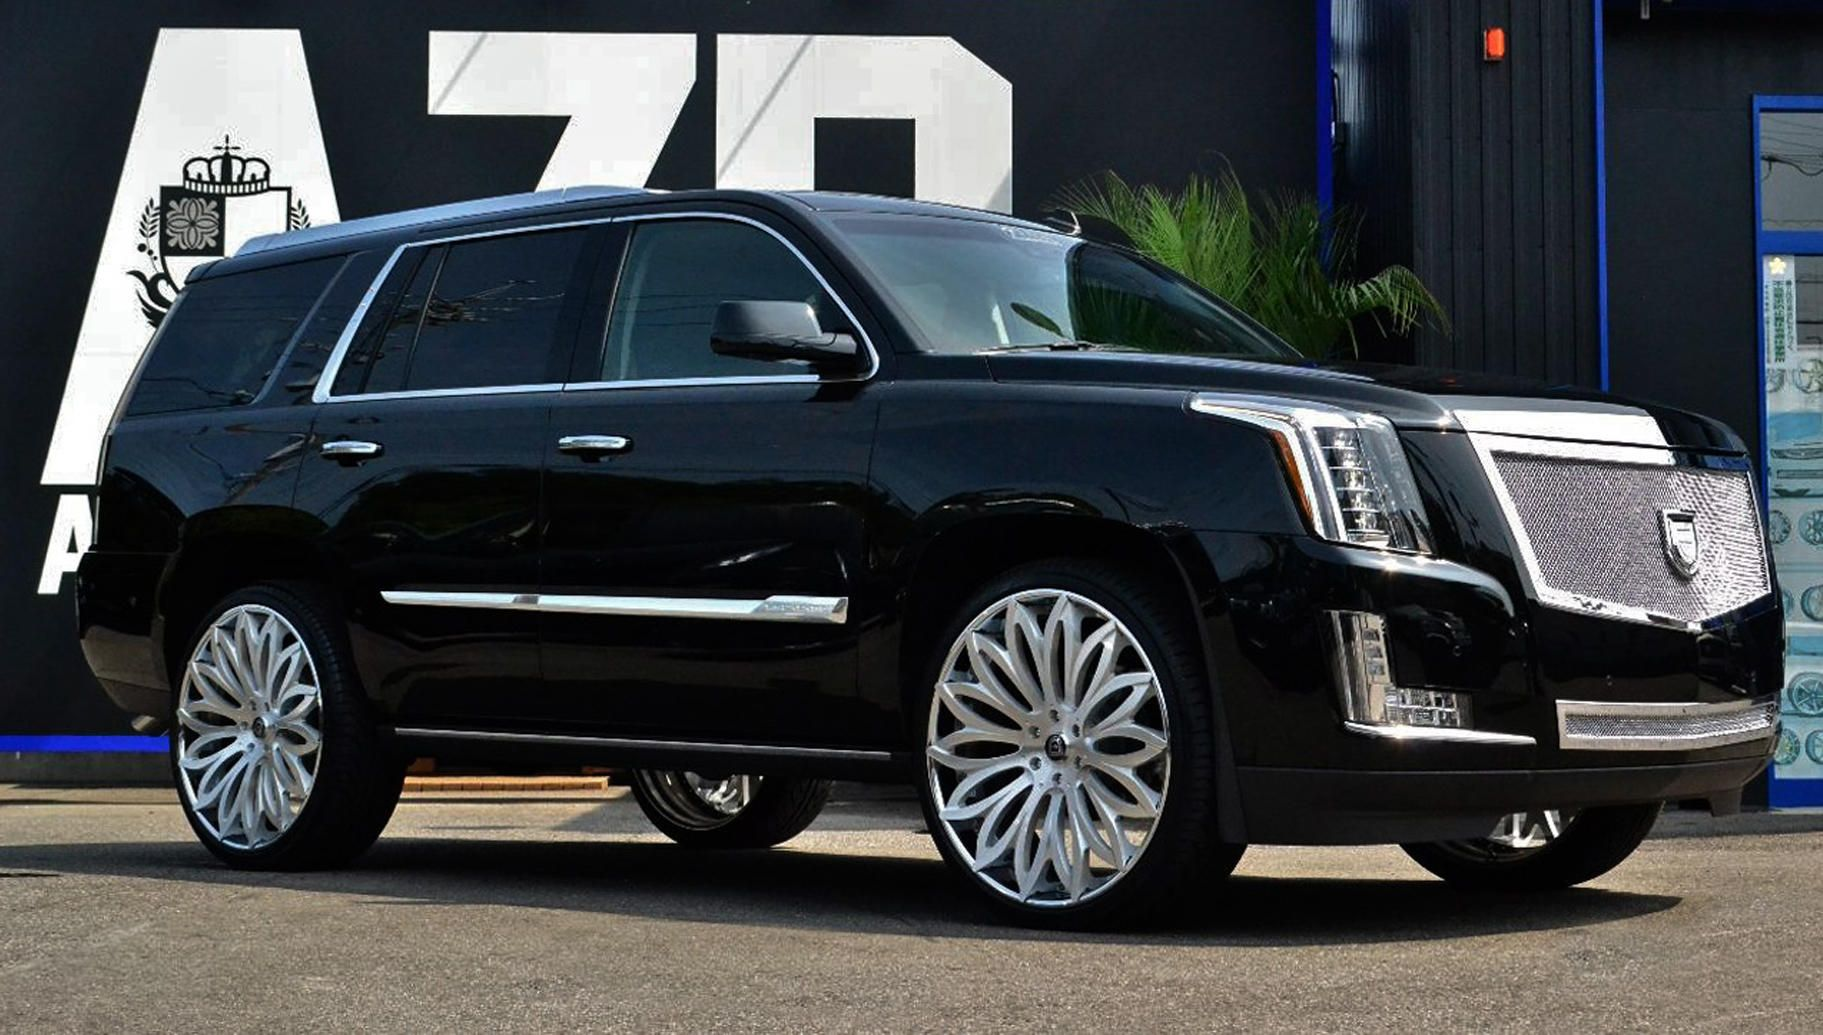 lexani wheels the leader in custom luxury wheels lf 731 brushed center with stainless steel chrome lip on the 2015 cadillac escalade  [ 1823 x 1035 Pixel ]